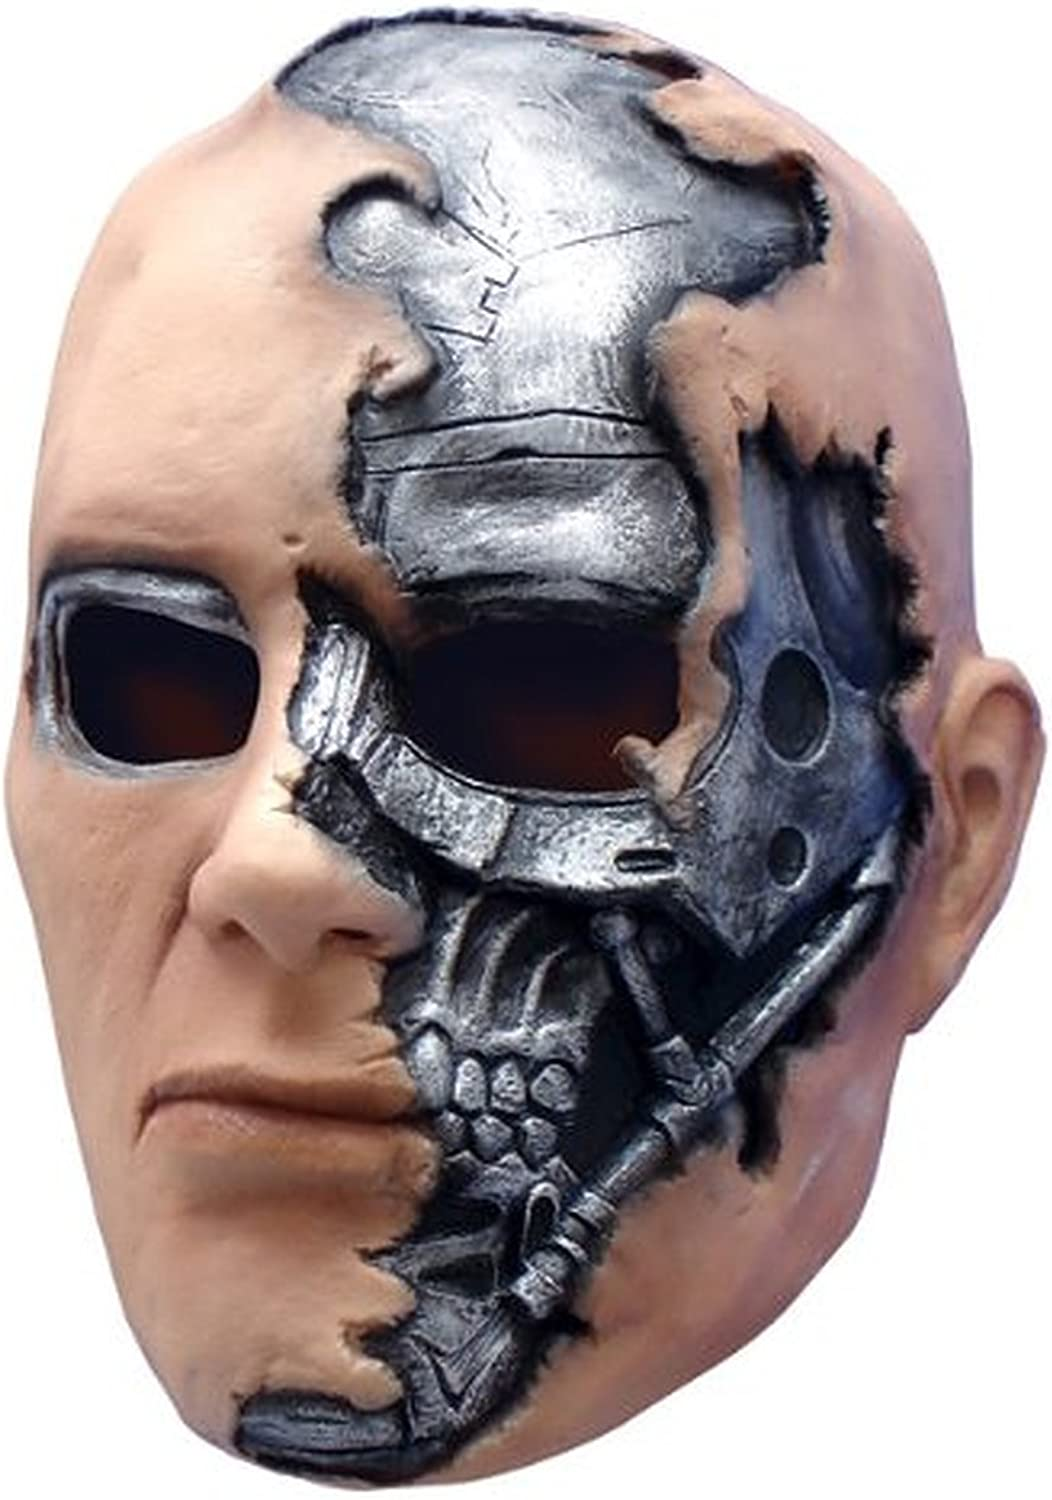 T600 Terminator Mask Costume Accessory by Unknown